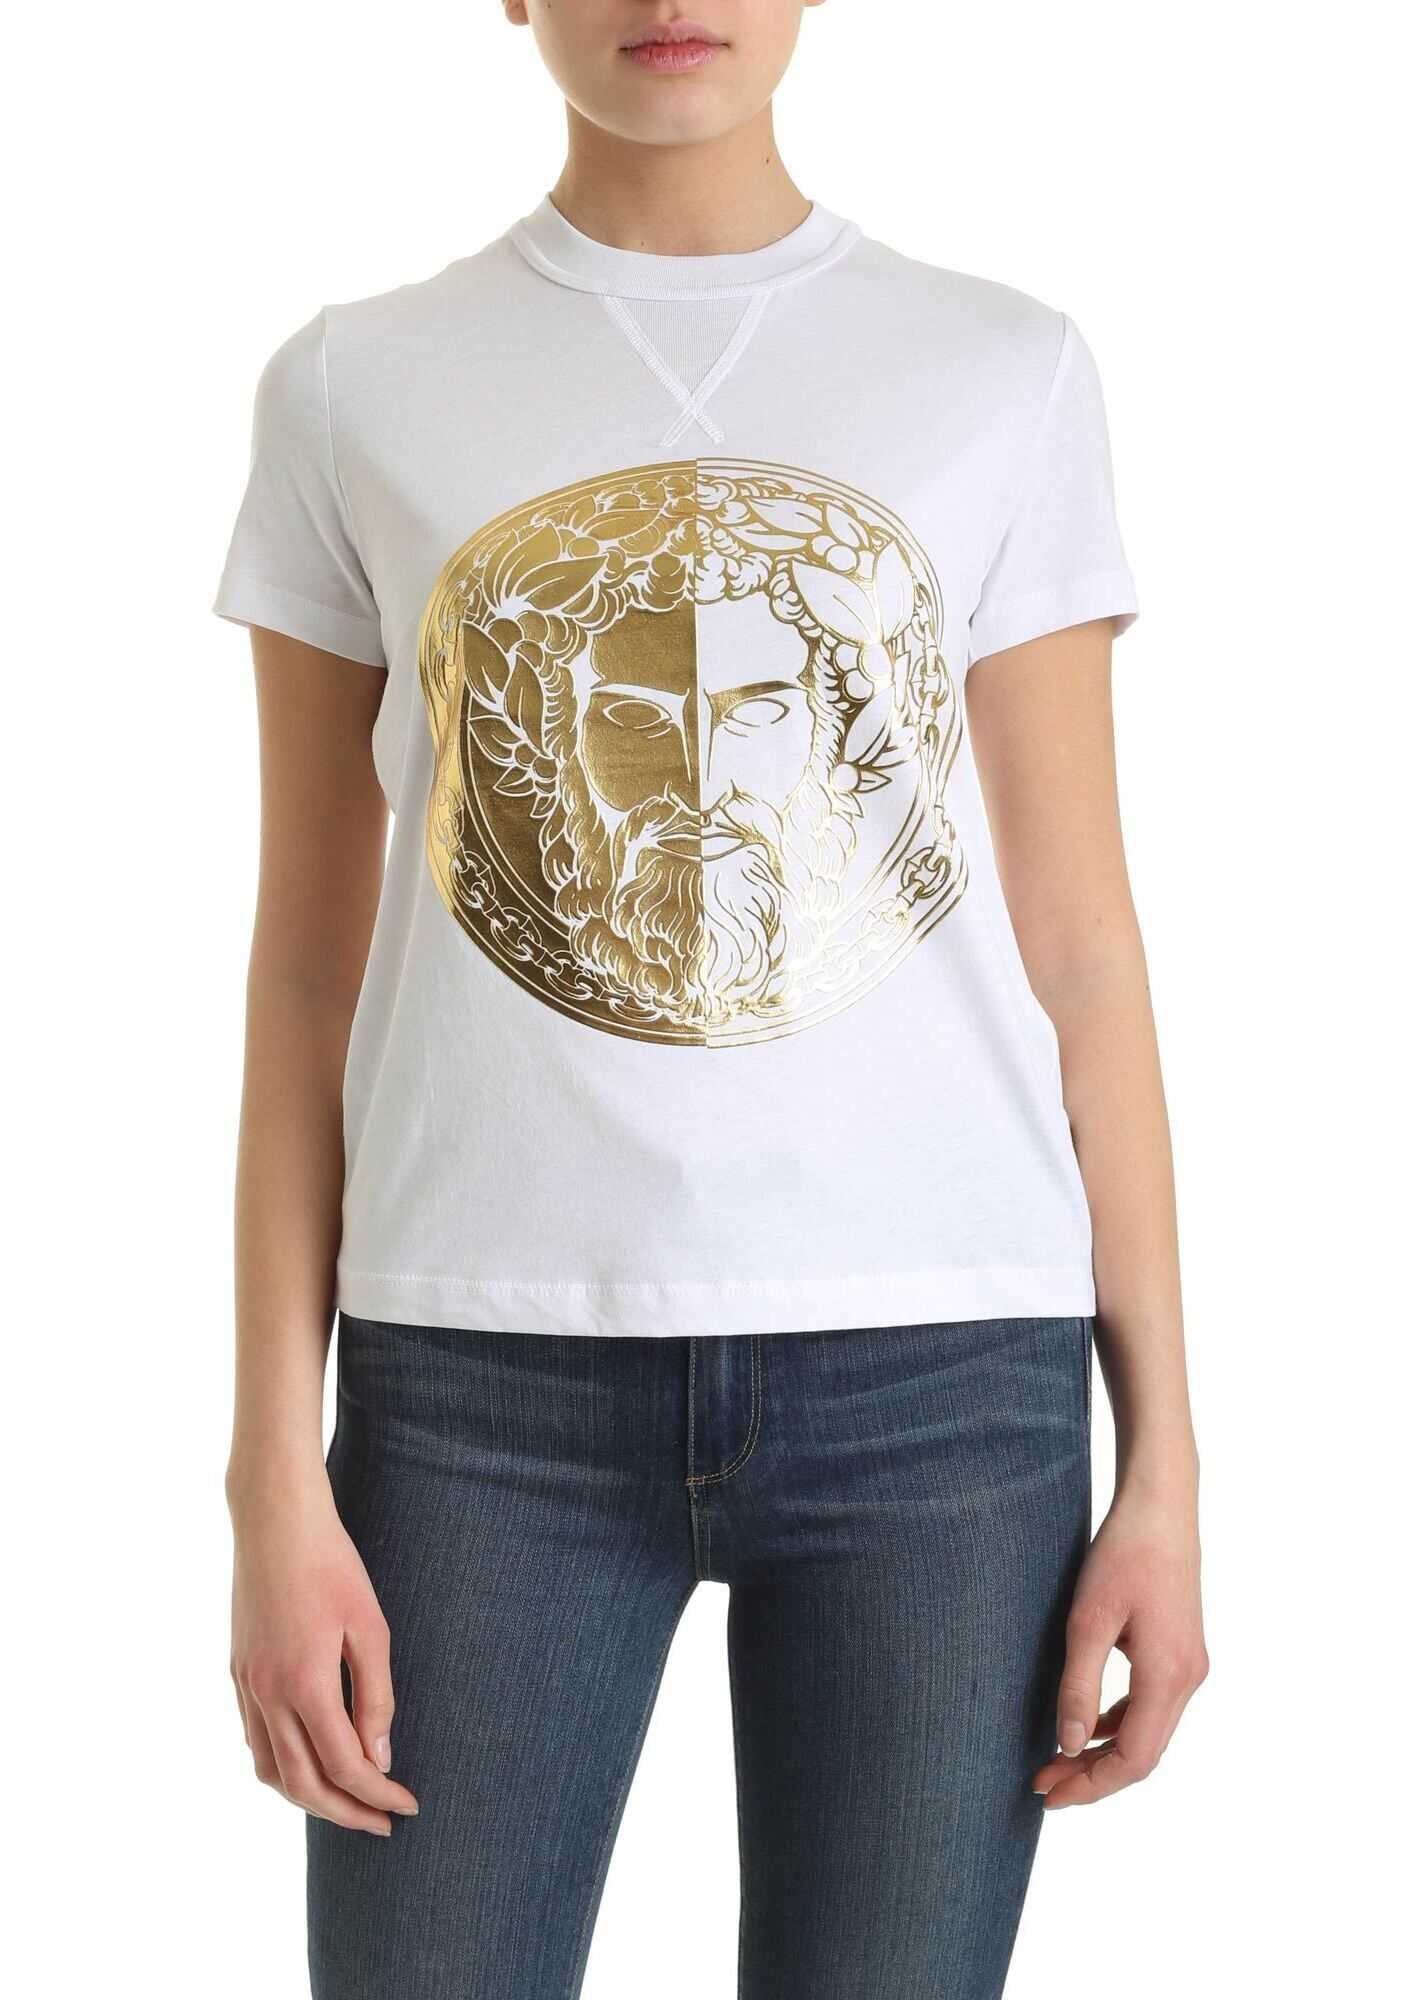 Versace Jeans Couture Golden Print T-Shirt In White White